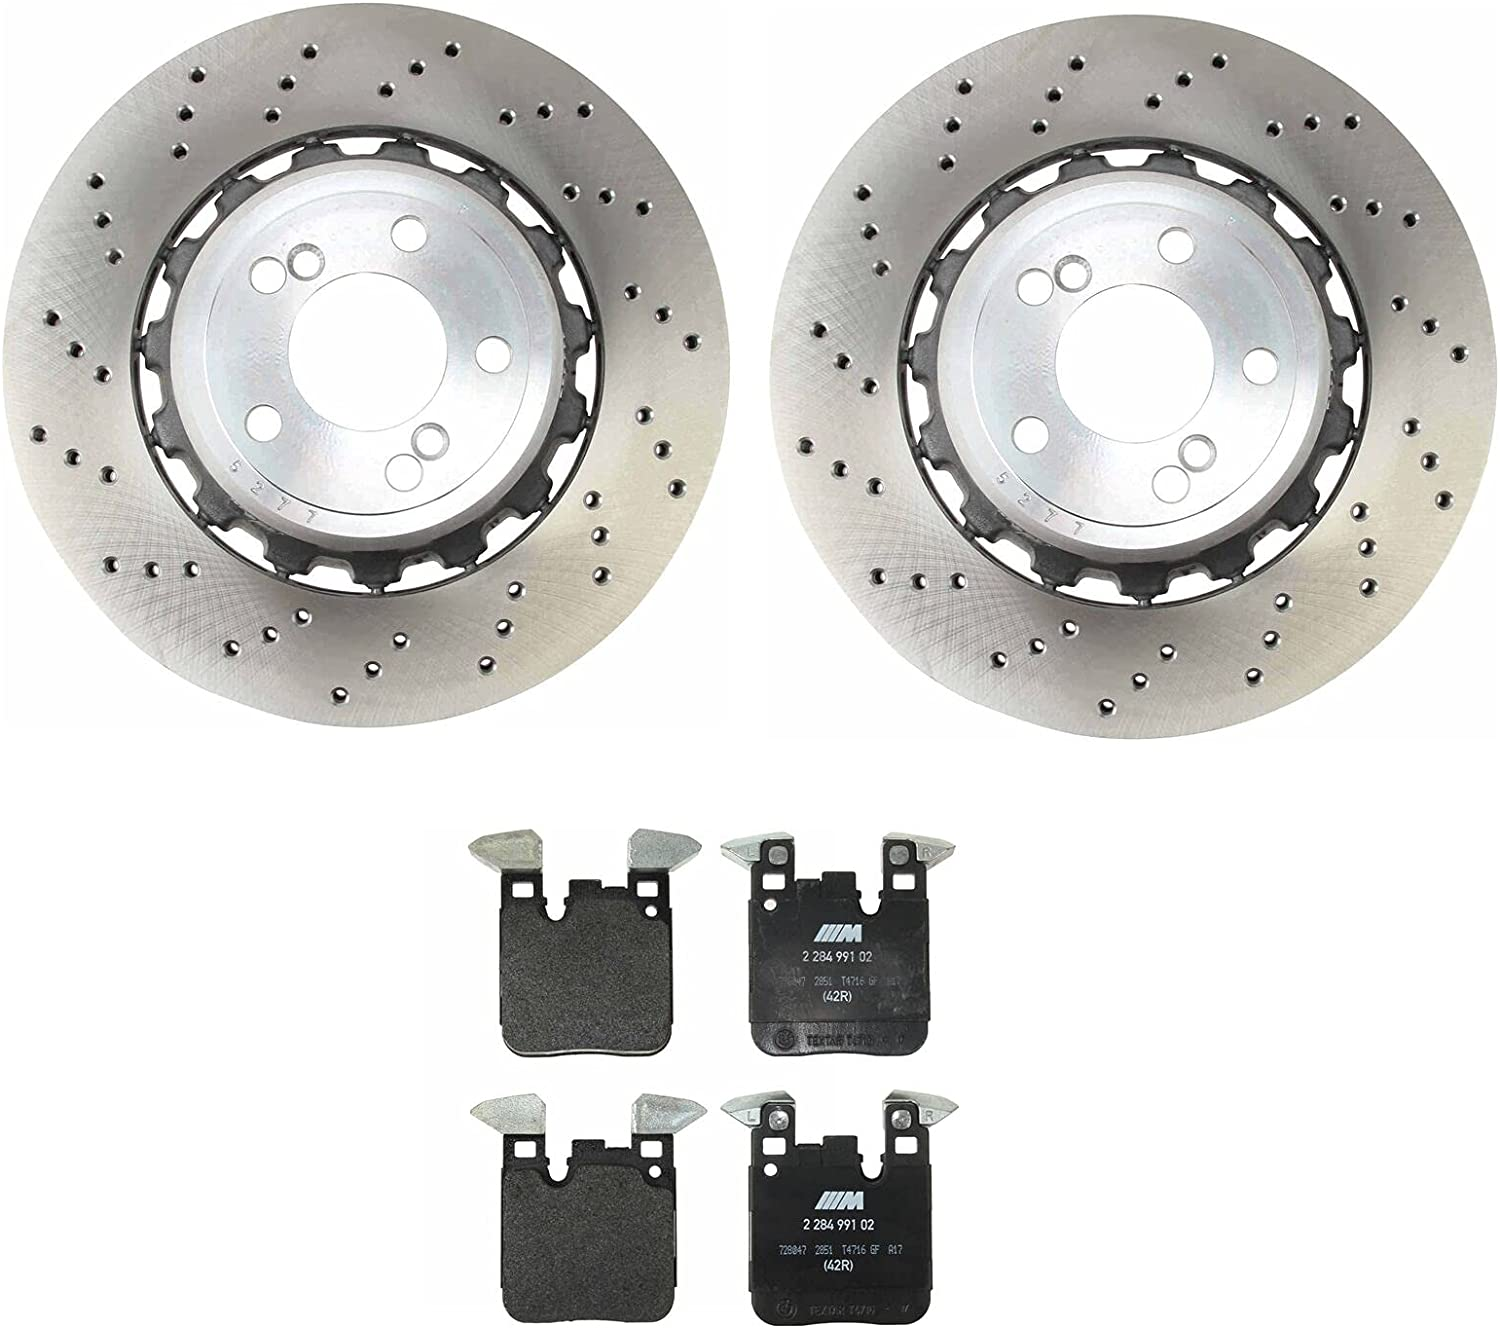 Rear Tucson Mall Max 59% OFF Brake kit Drilled Vented Rotors with Compatible Pads Disc